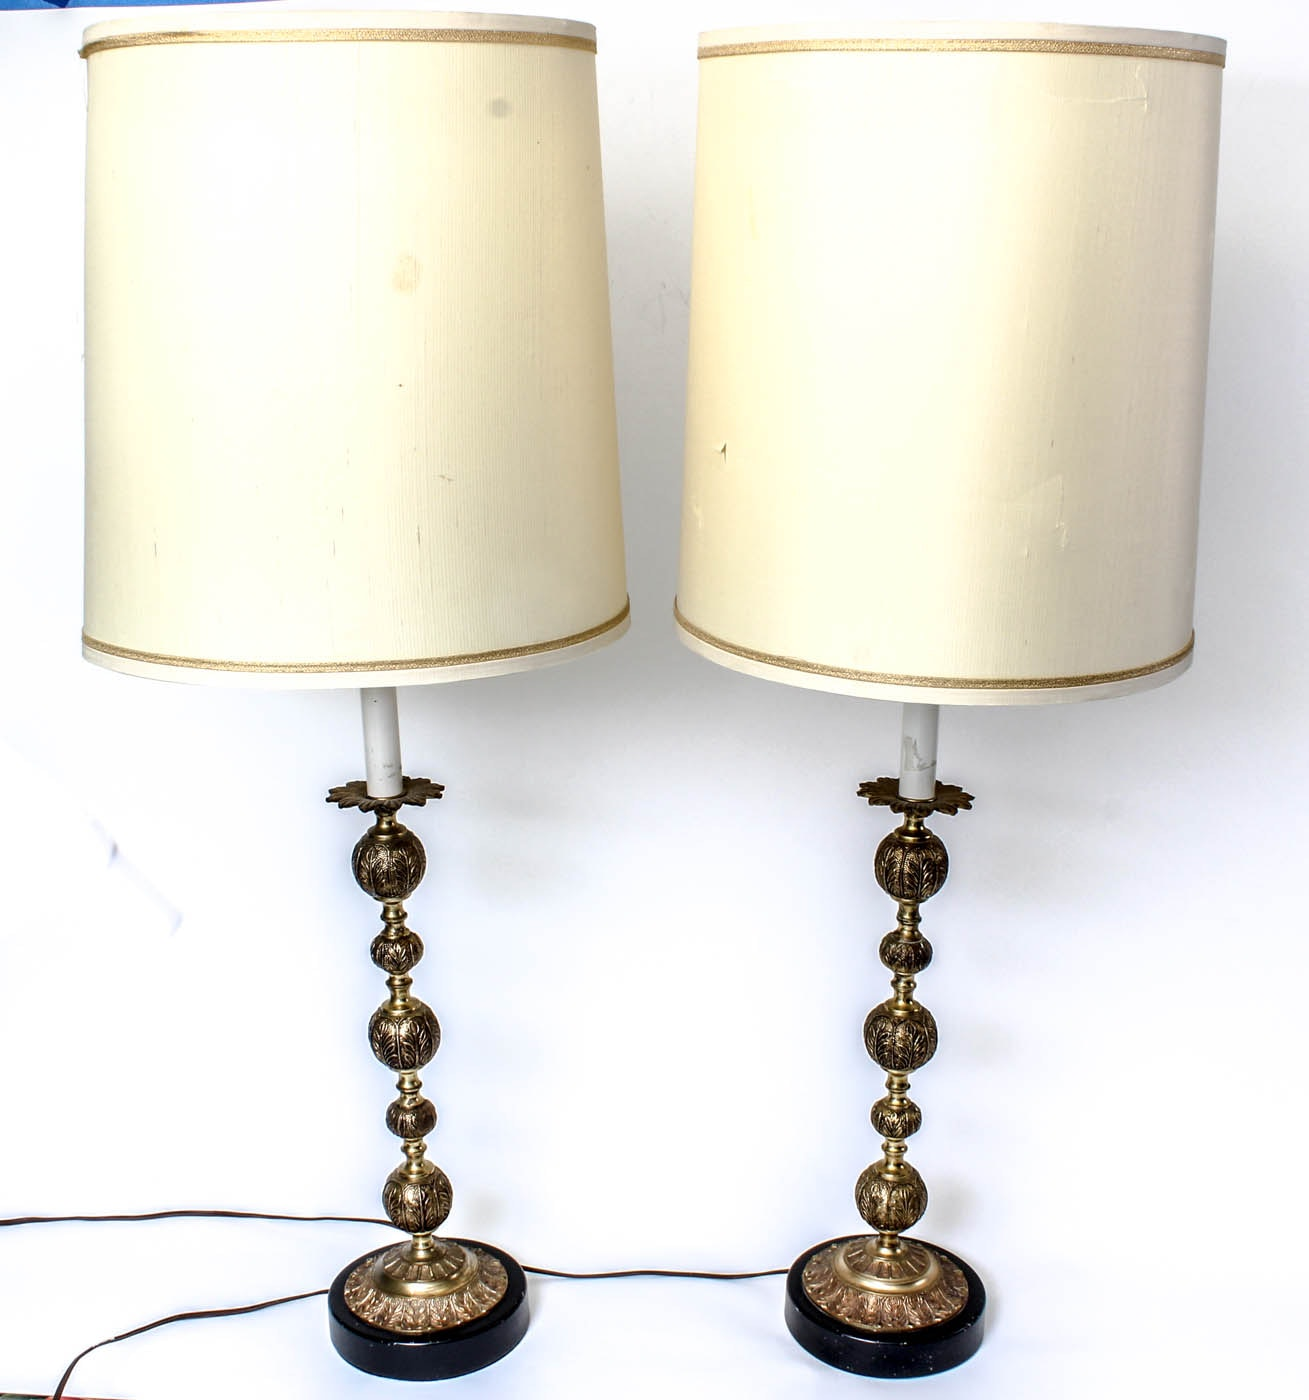 Pair of Vintage Ornate Brass Table Lamps